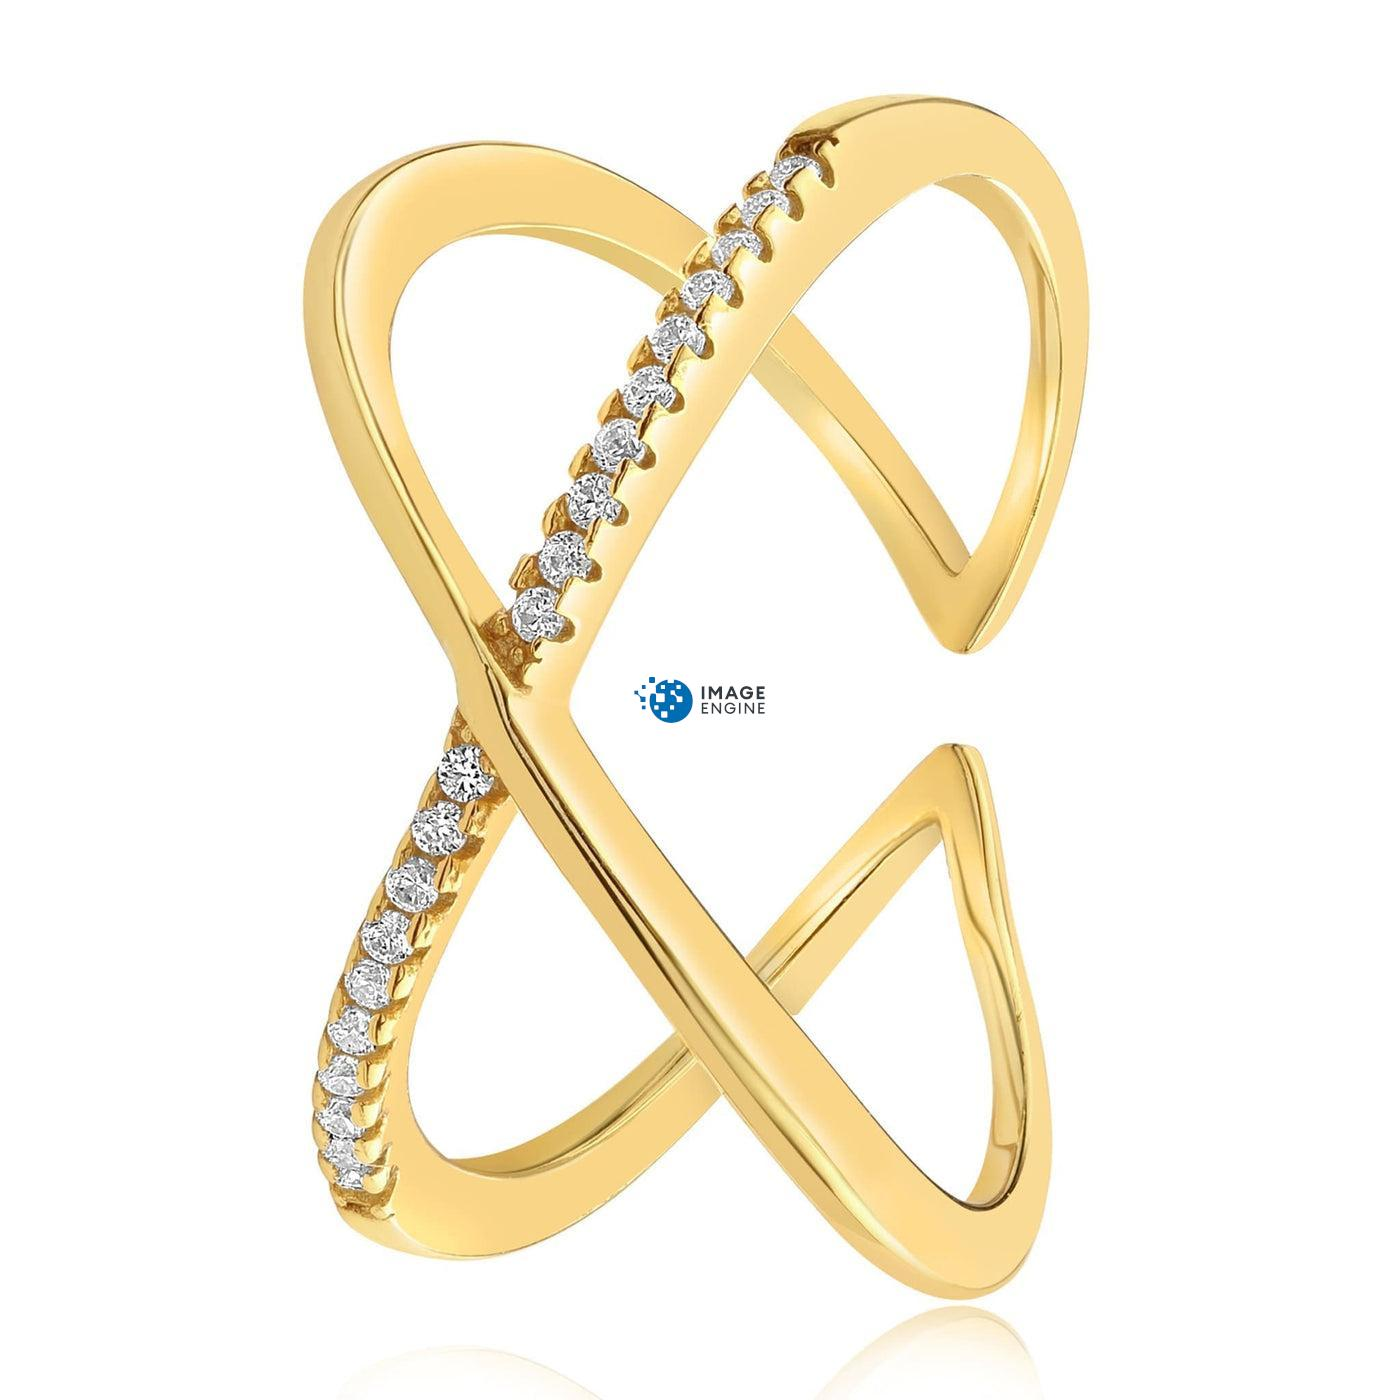 Nadia X Infinity Ring - Side View - 18K Yellow Gold Vermeil